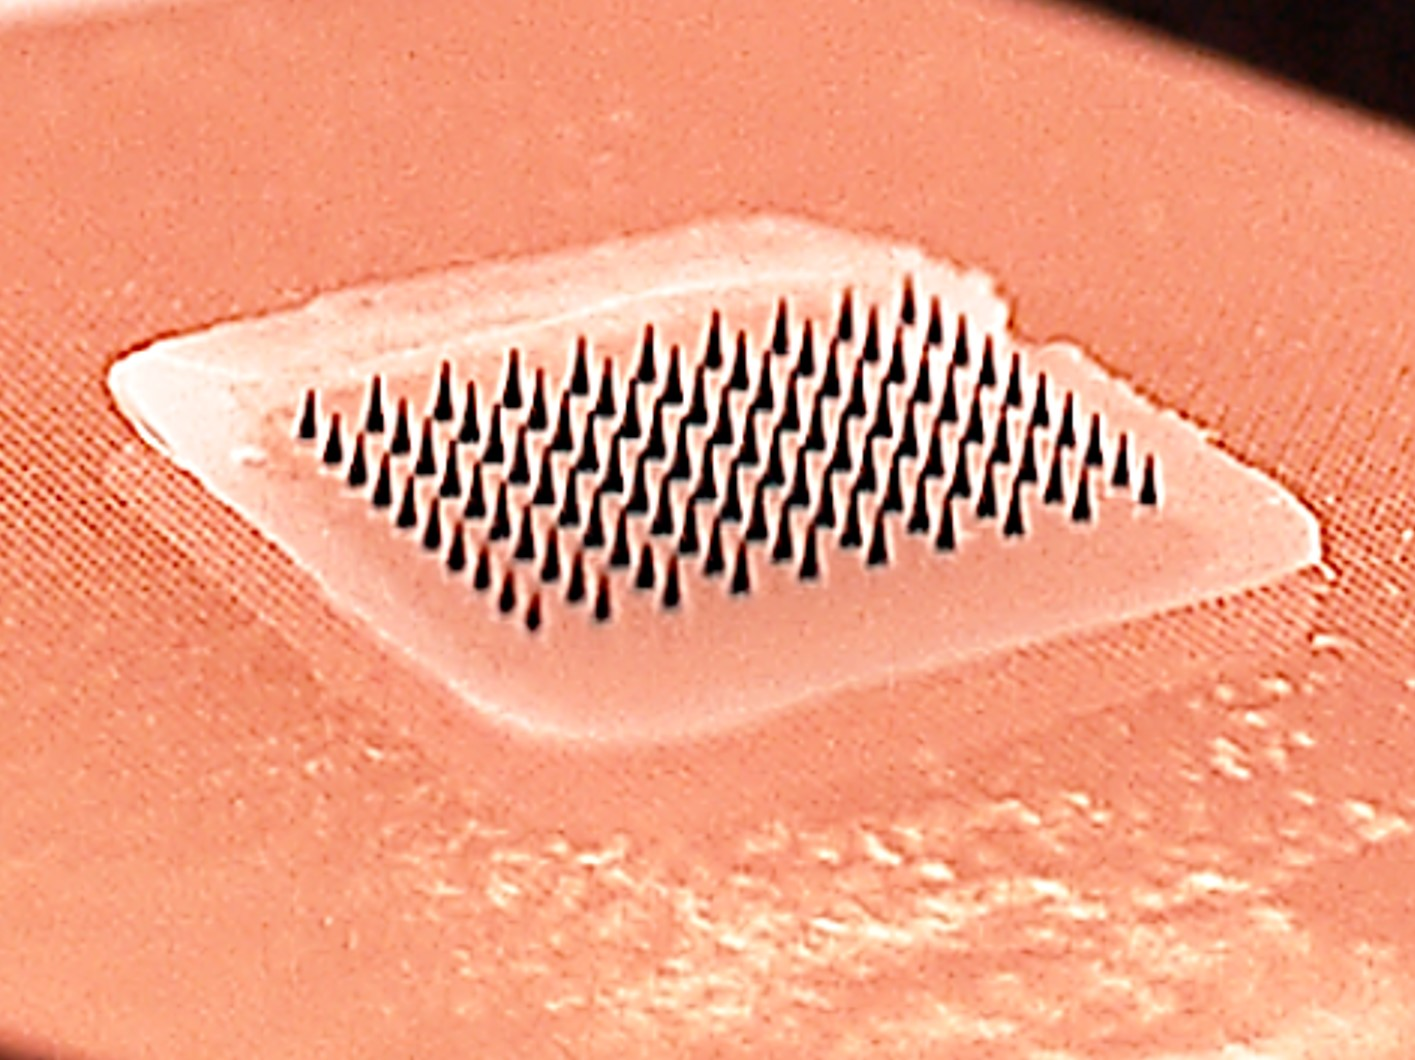 Researchers Develop Microneedle Patch for Flu Vaccination